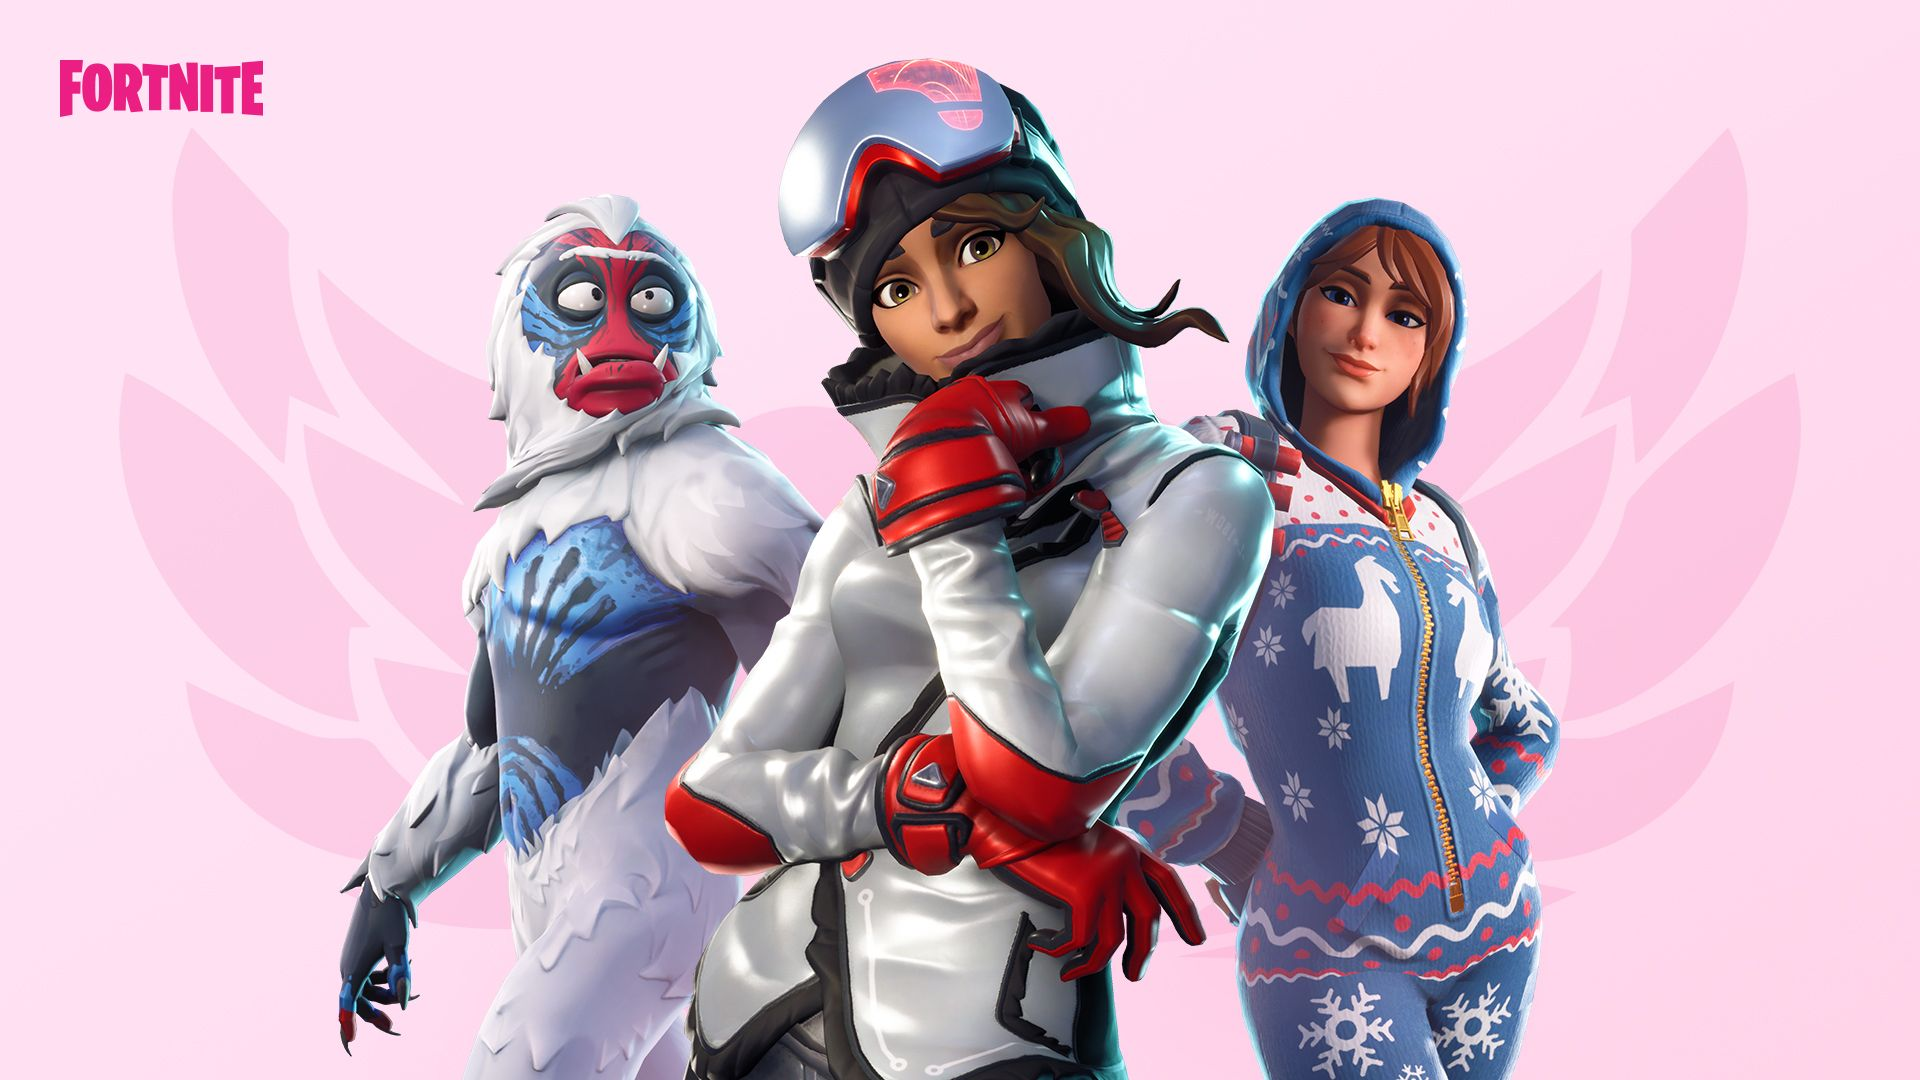 Pin by Nicole Houchen on Fortnite in 2019 Epic games fortnite 1920x1080